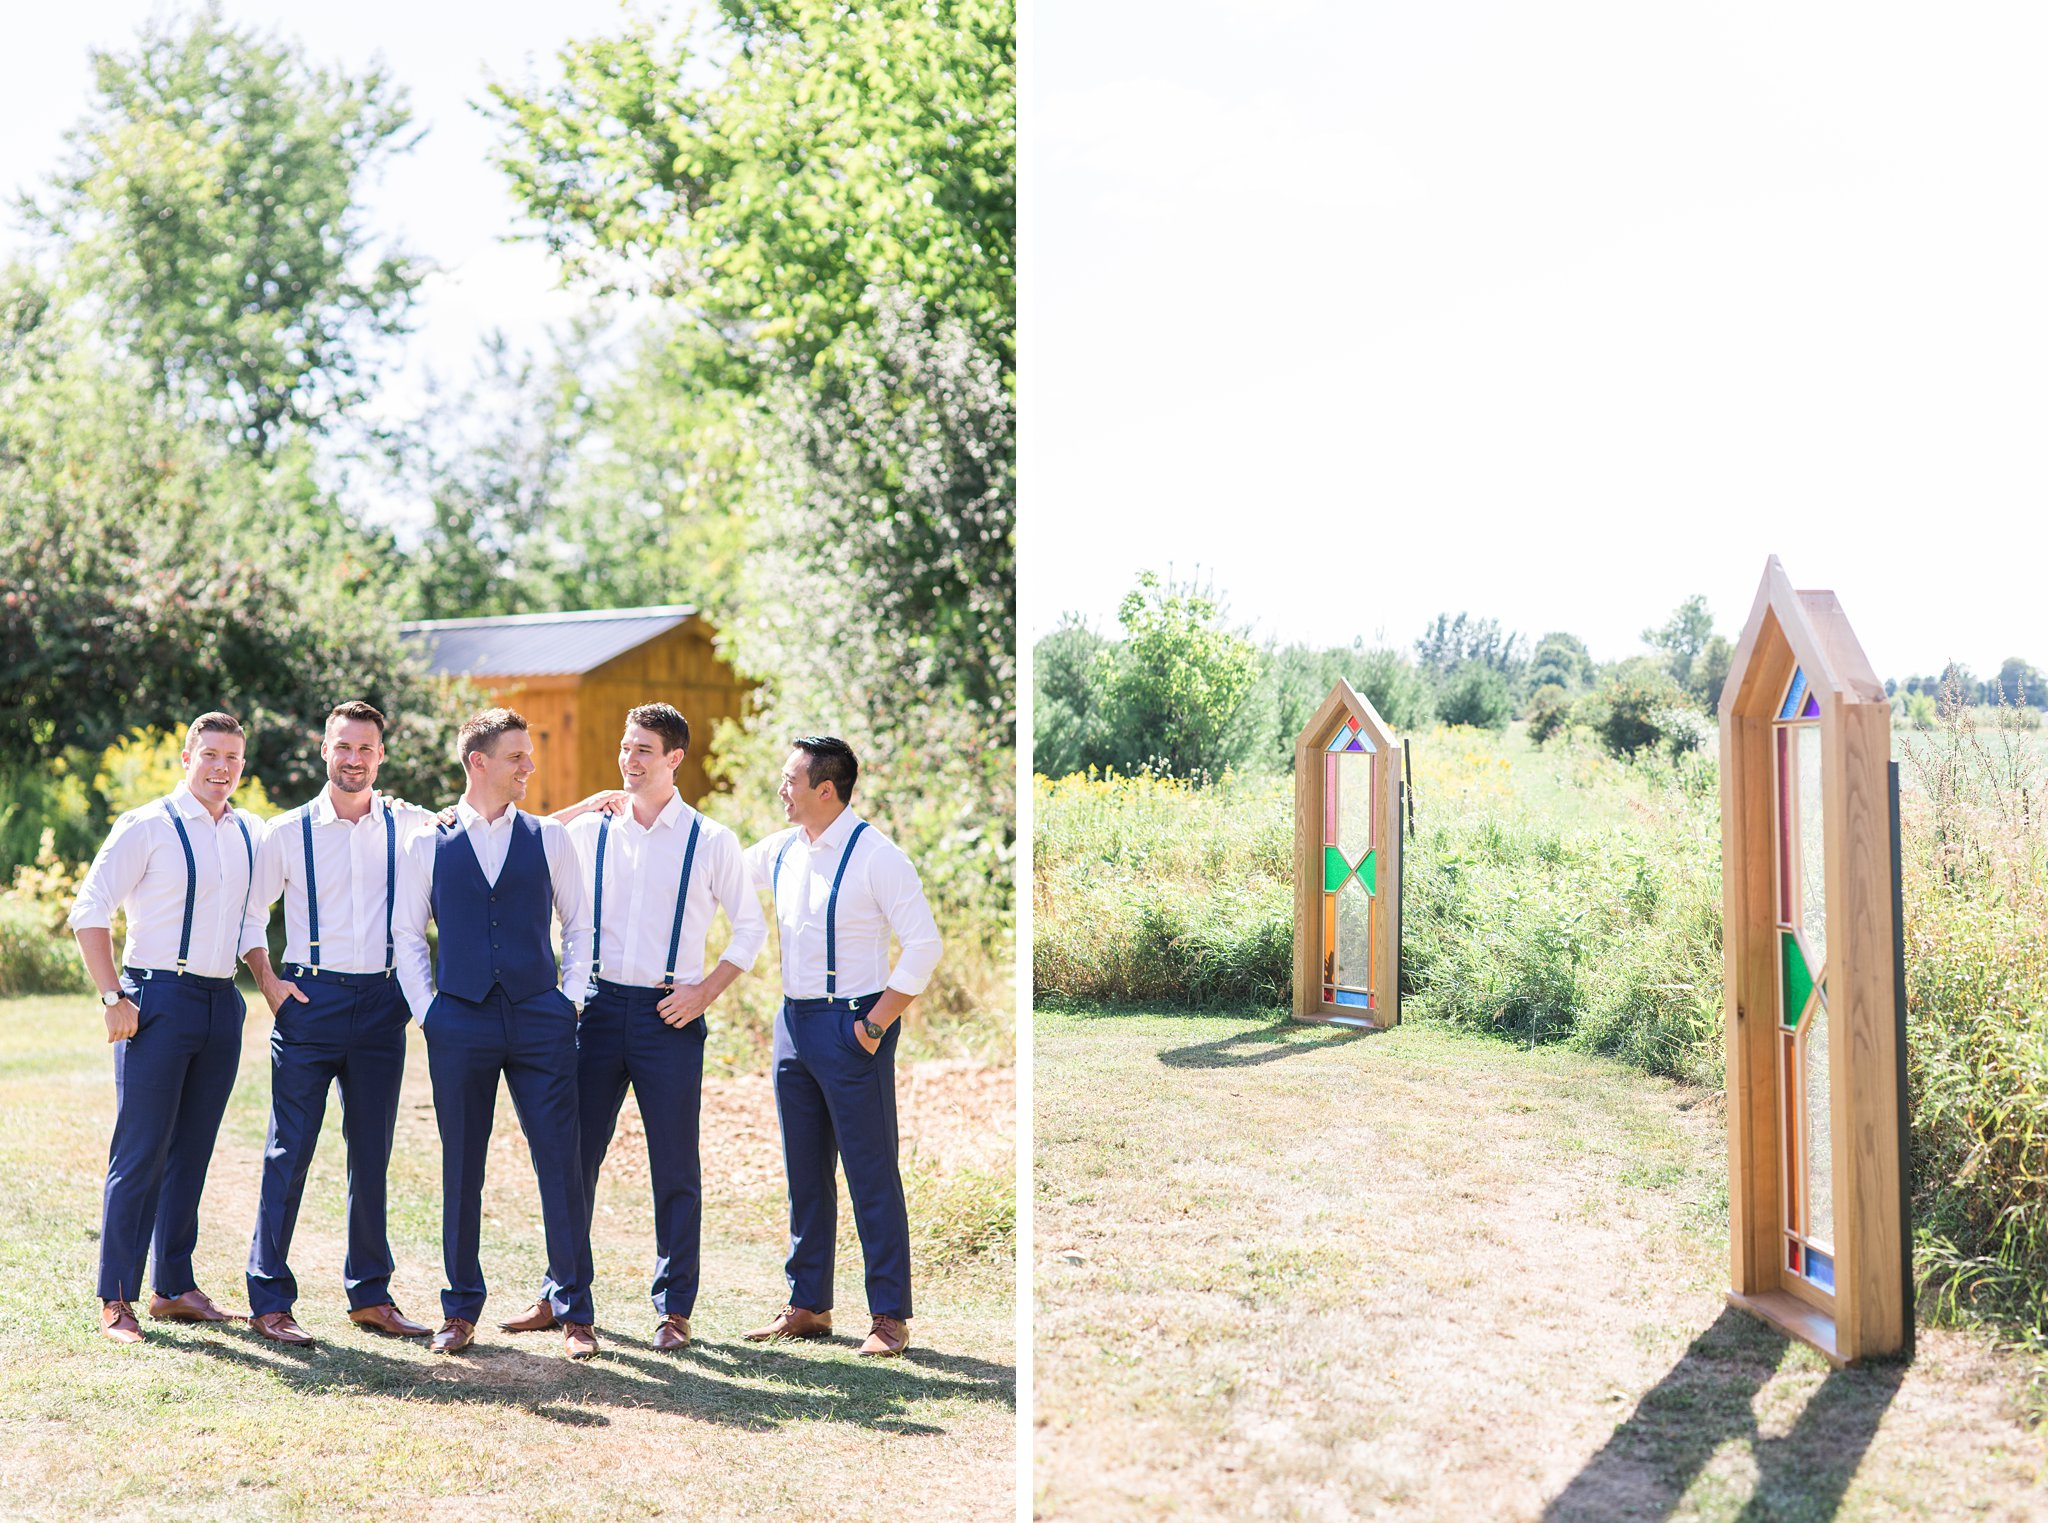 Stained glass, outdoor wedding, groomsmen, Private Estate Wedding Photos, Amy Pinder Photography